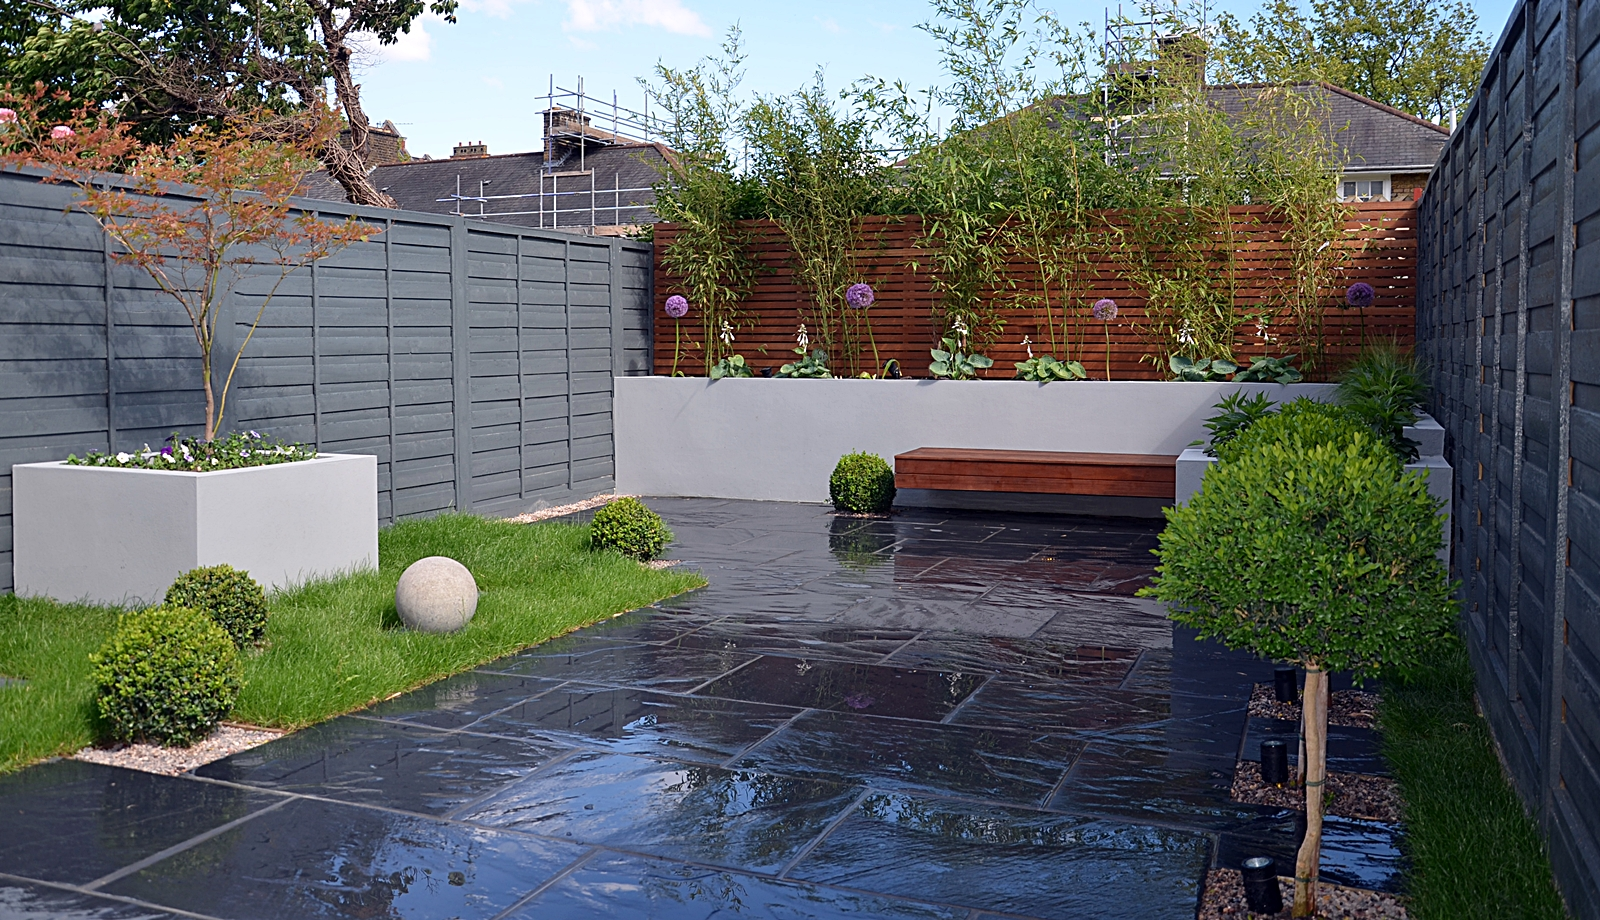 Modern garden design london london garden blog for Modern garden